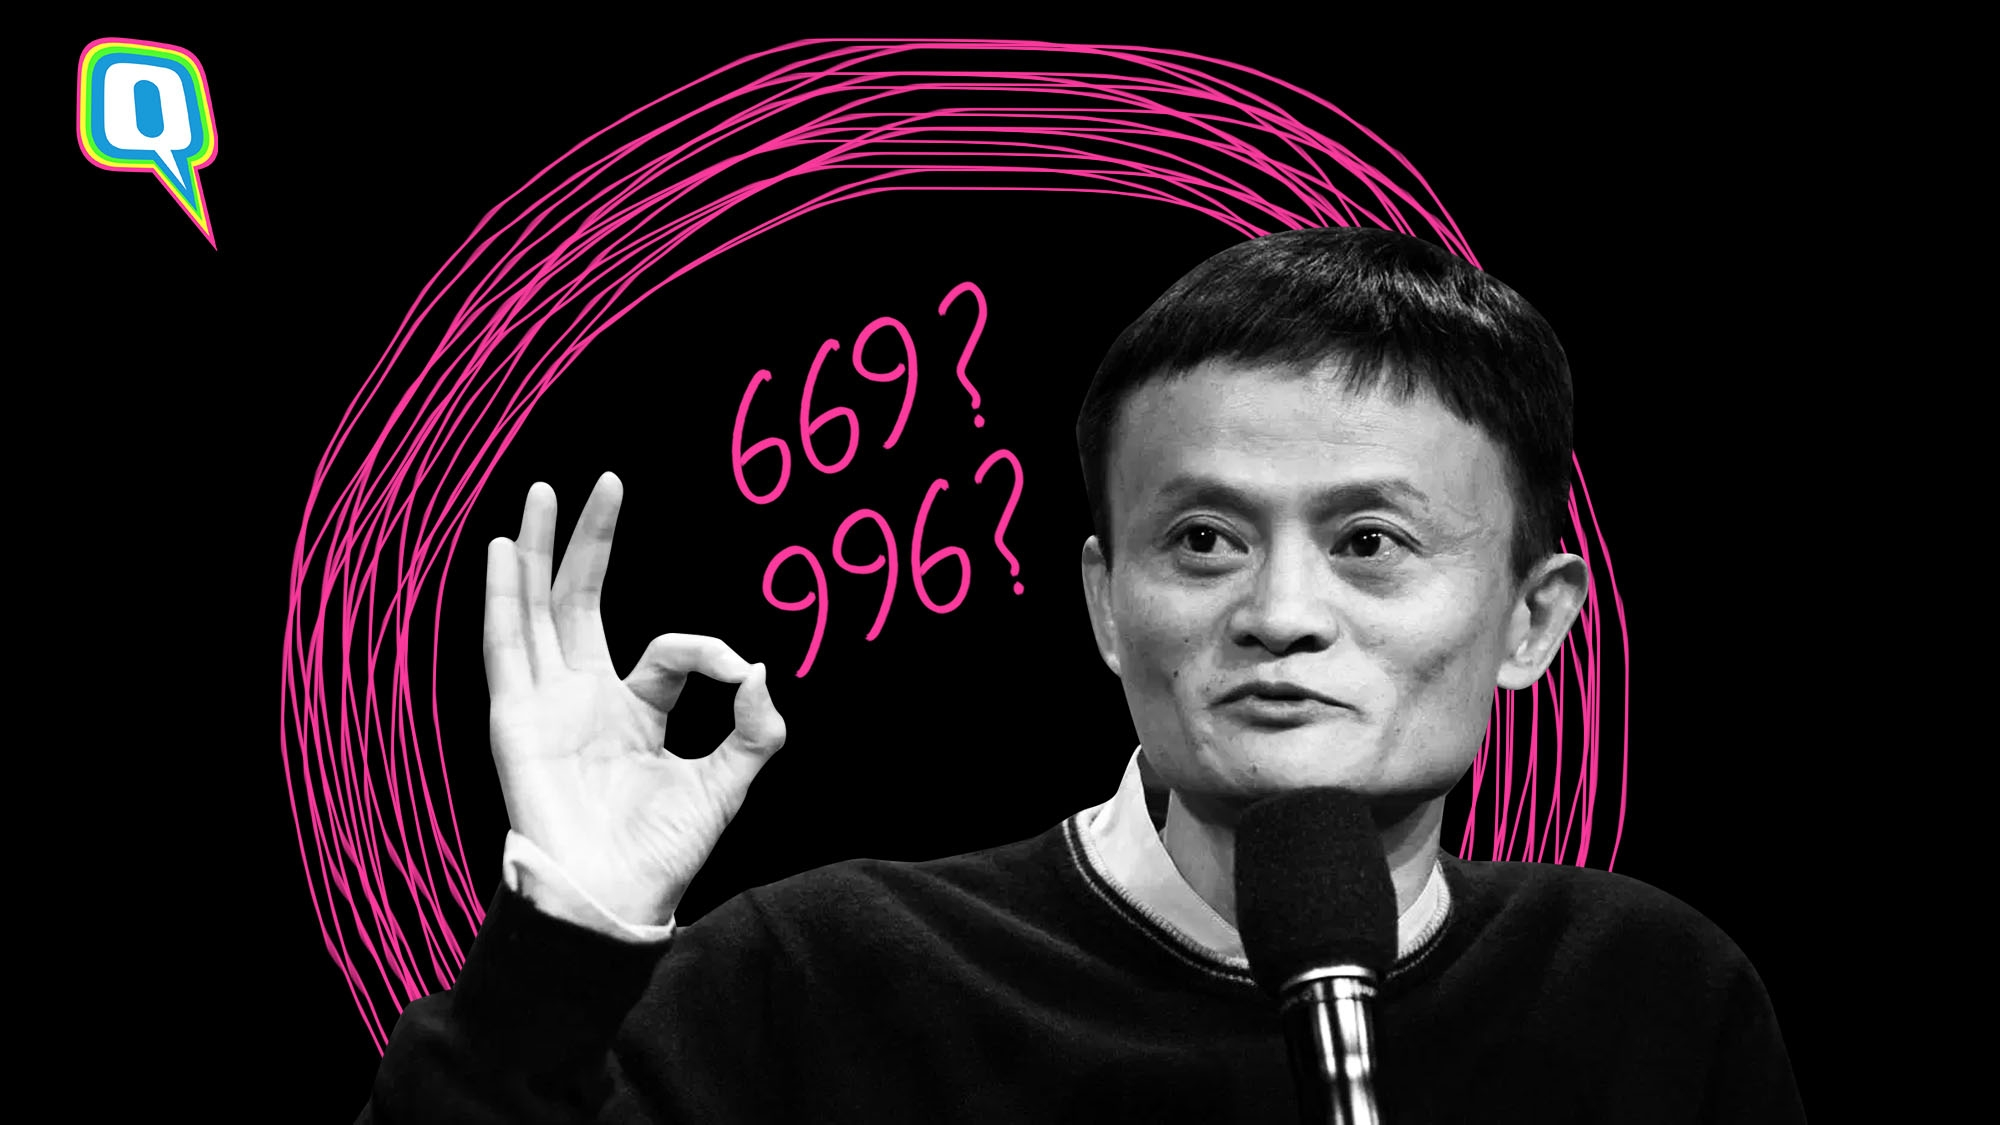 6 Reasons Why Jack Ma's '669' is Just Not Doable